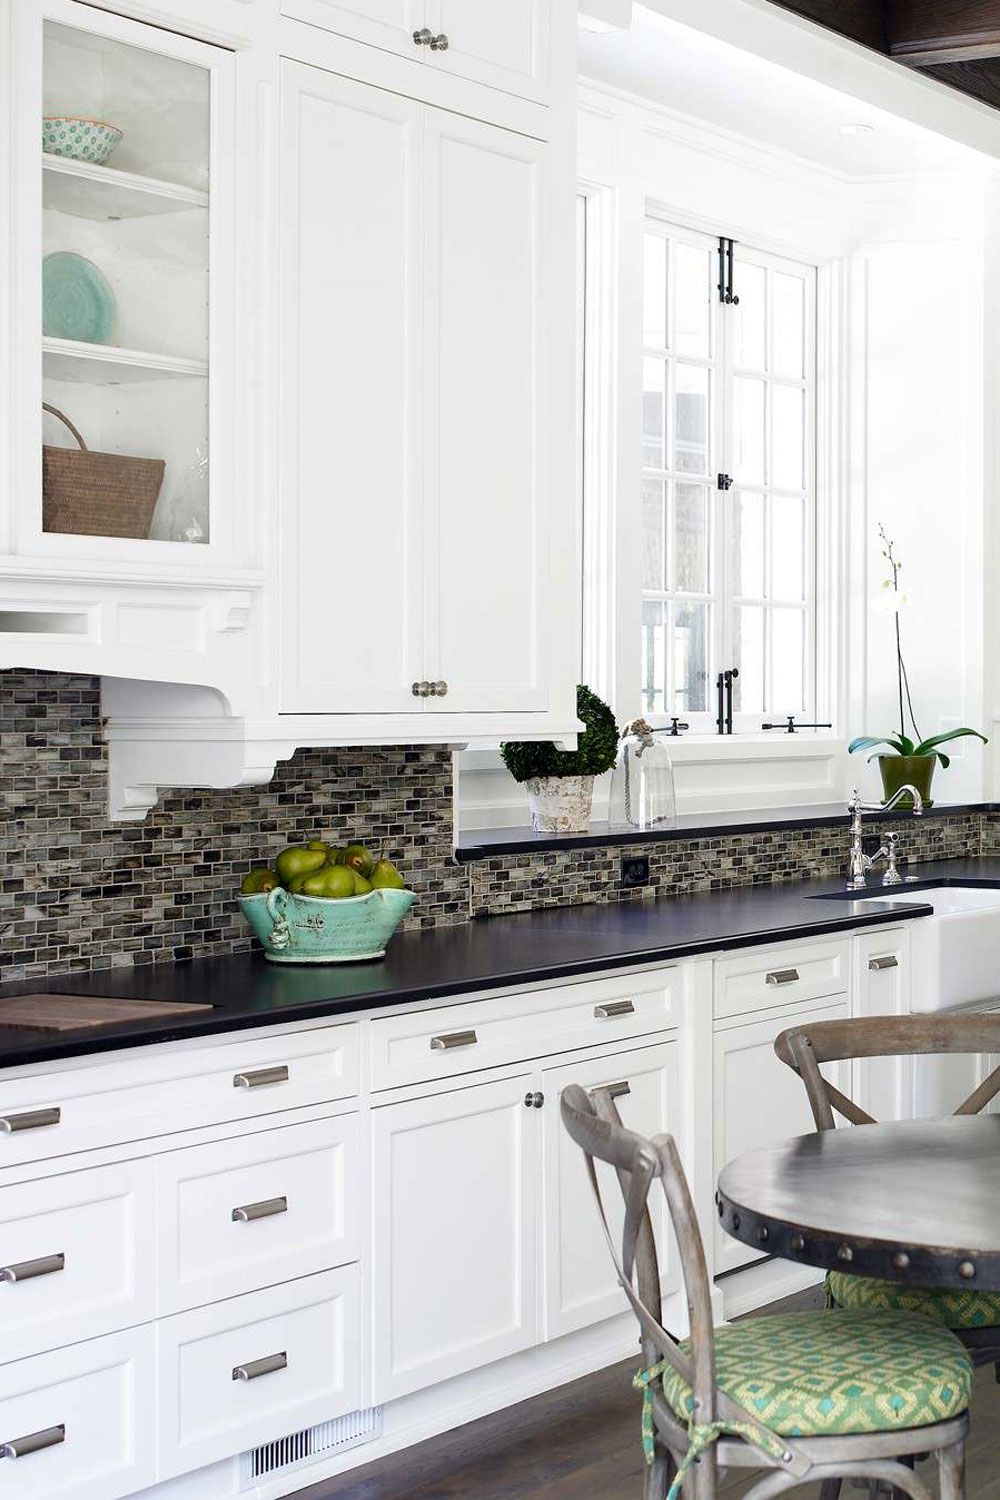 50+ Black Countertop Backsplash Ideas (Tile Designs, Tips ... on Backsplash Ideas With Black Countertops  id=81876